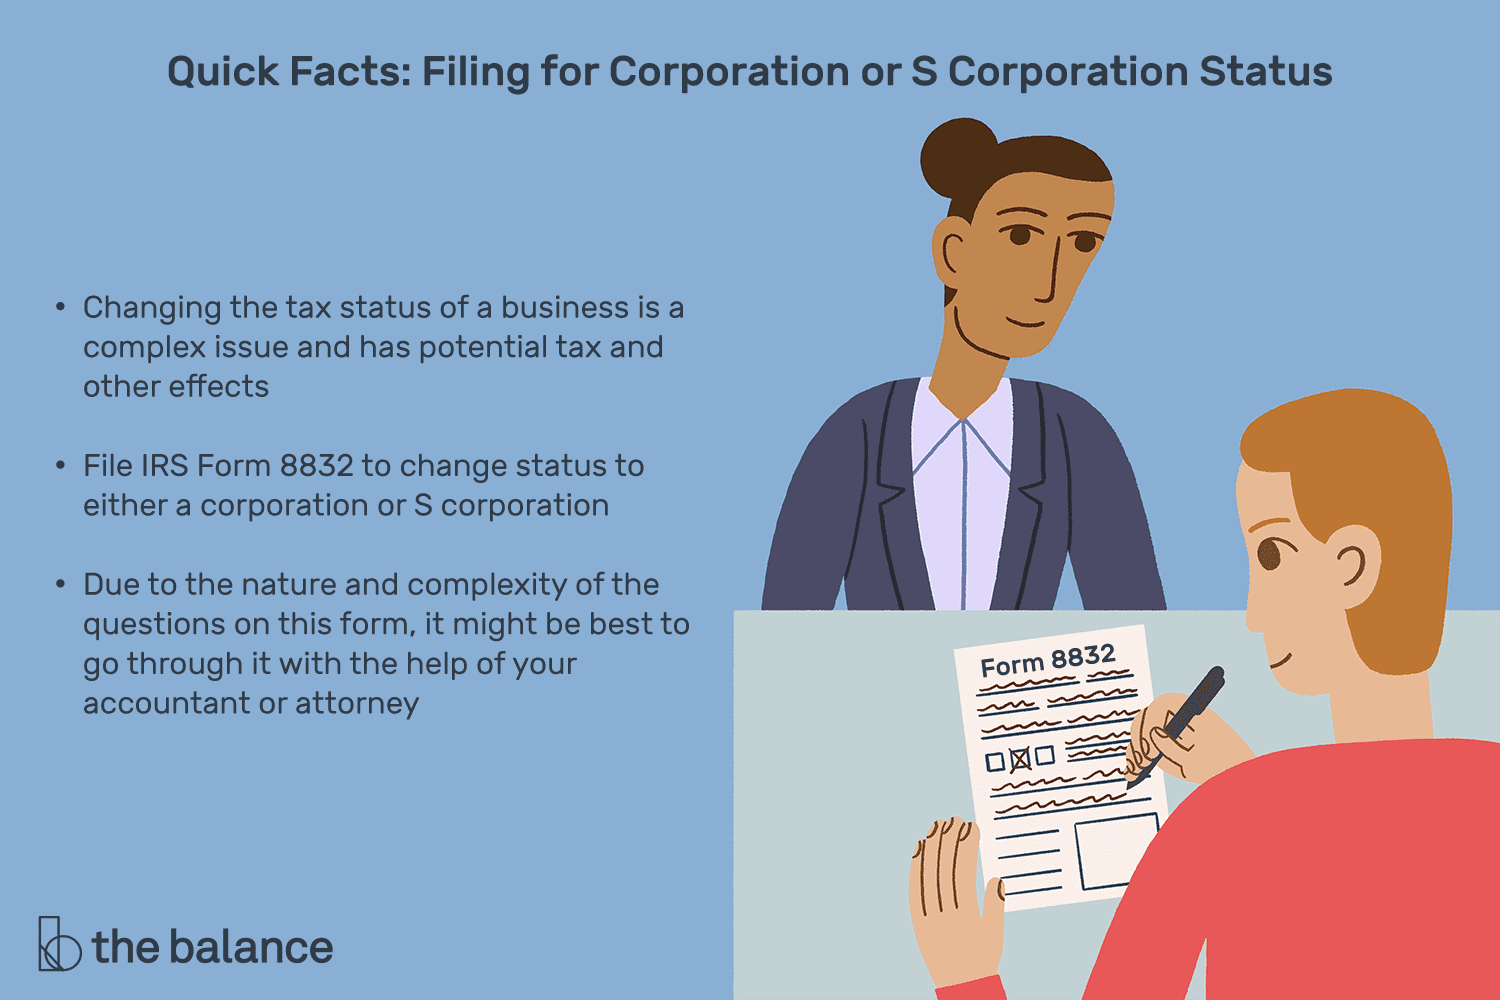 Form 2553 change your llc tax status to a corporation or s corp